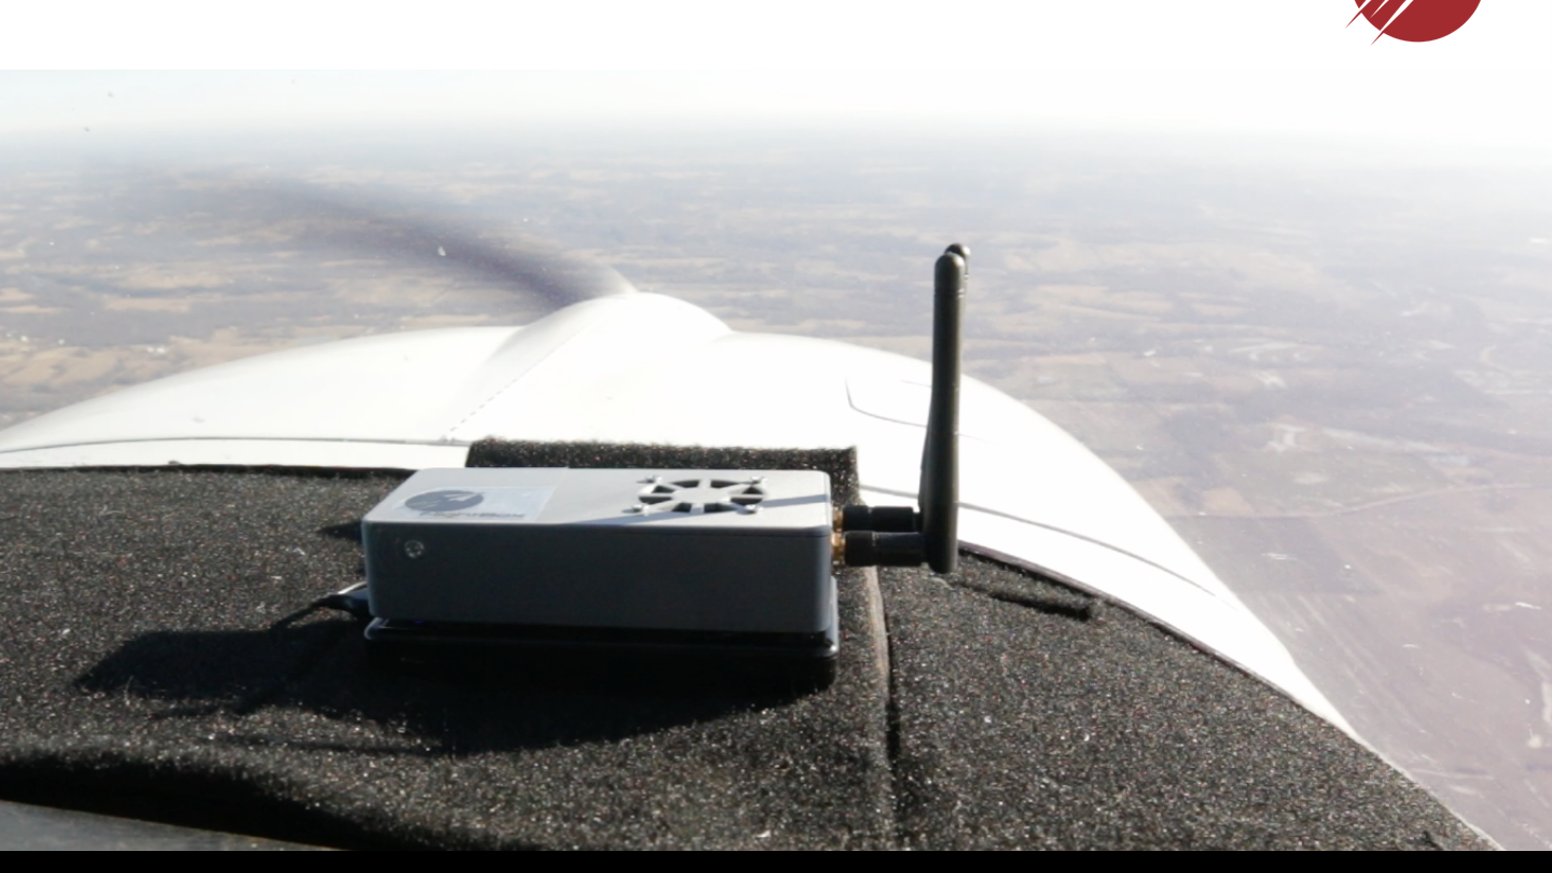 In-flight weather, traffic, and GPS navigation for the price of a tank of avgas.